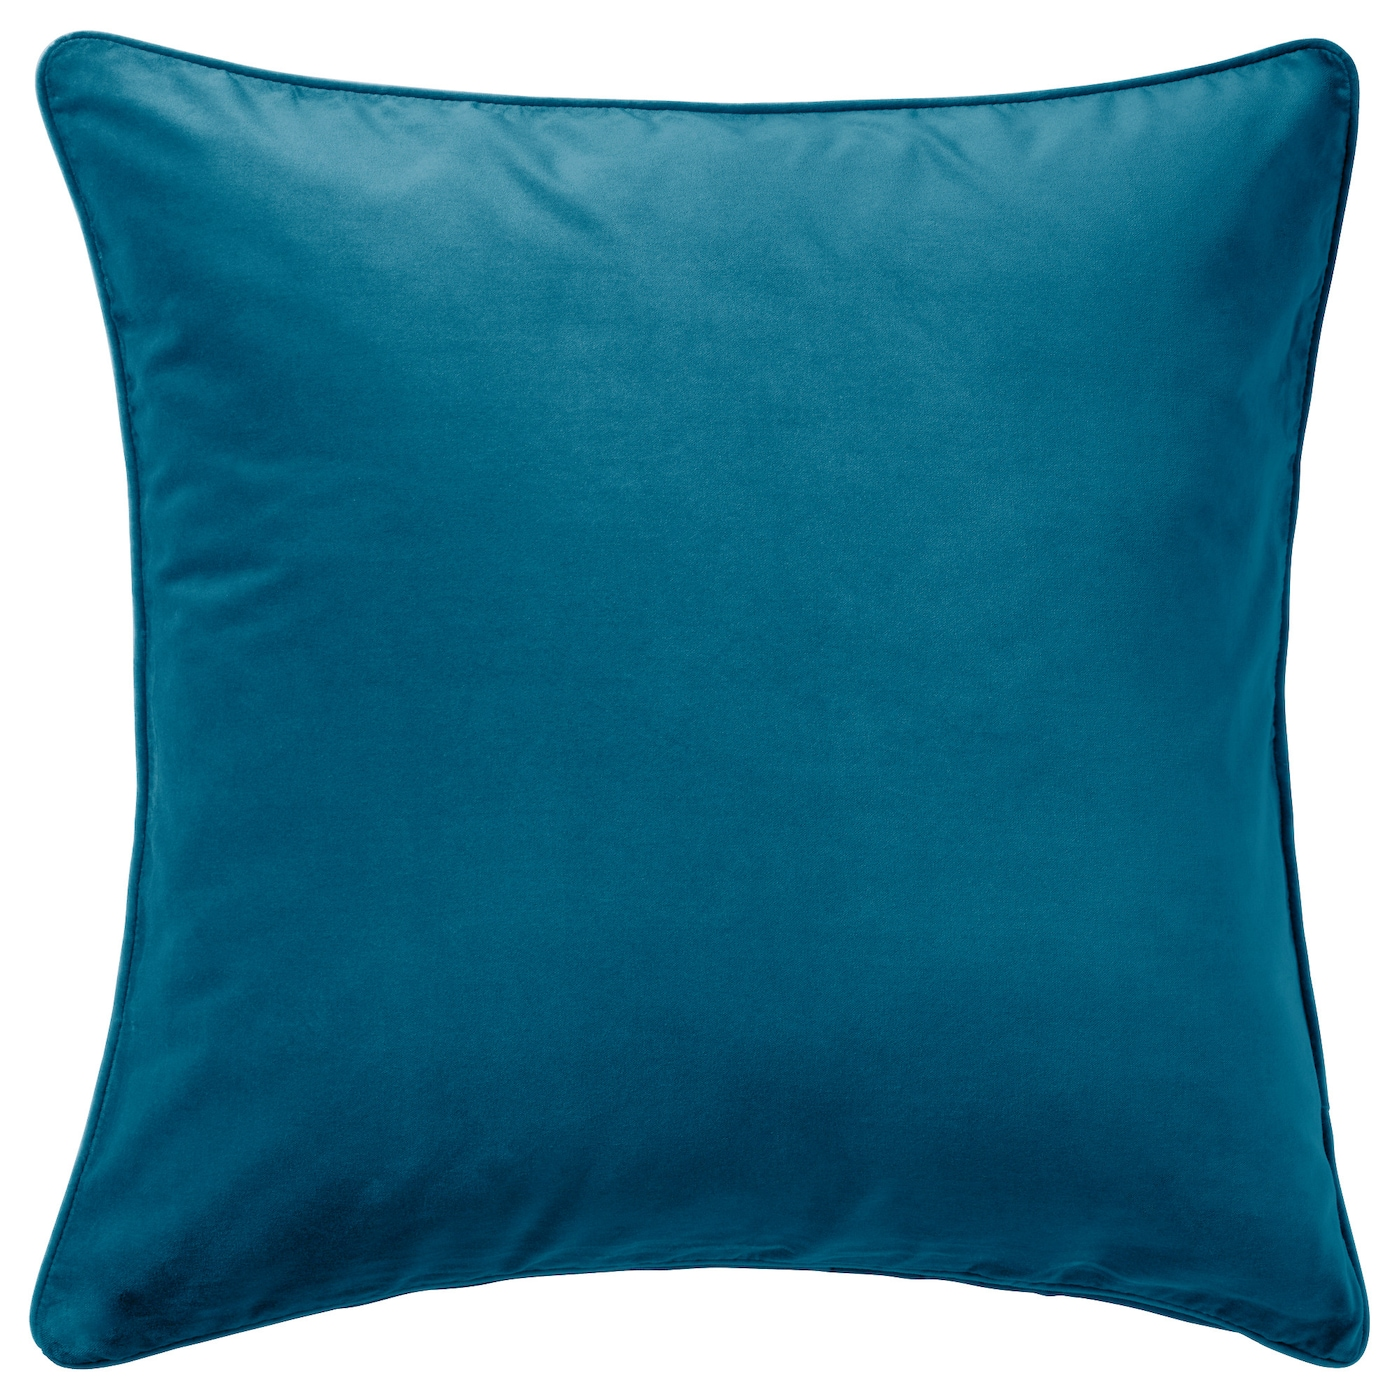 sanela cushion cover dark turquoise 65x65 cm ikea. Black Bedroom Furniture Sets. Home Design Ideas